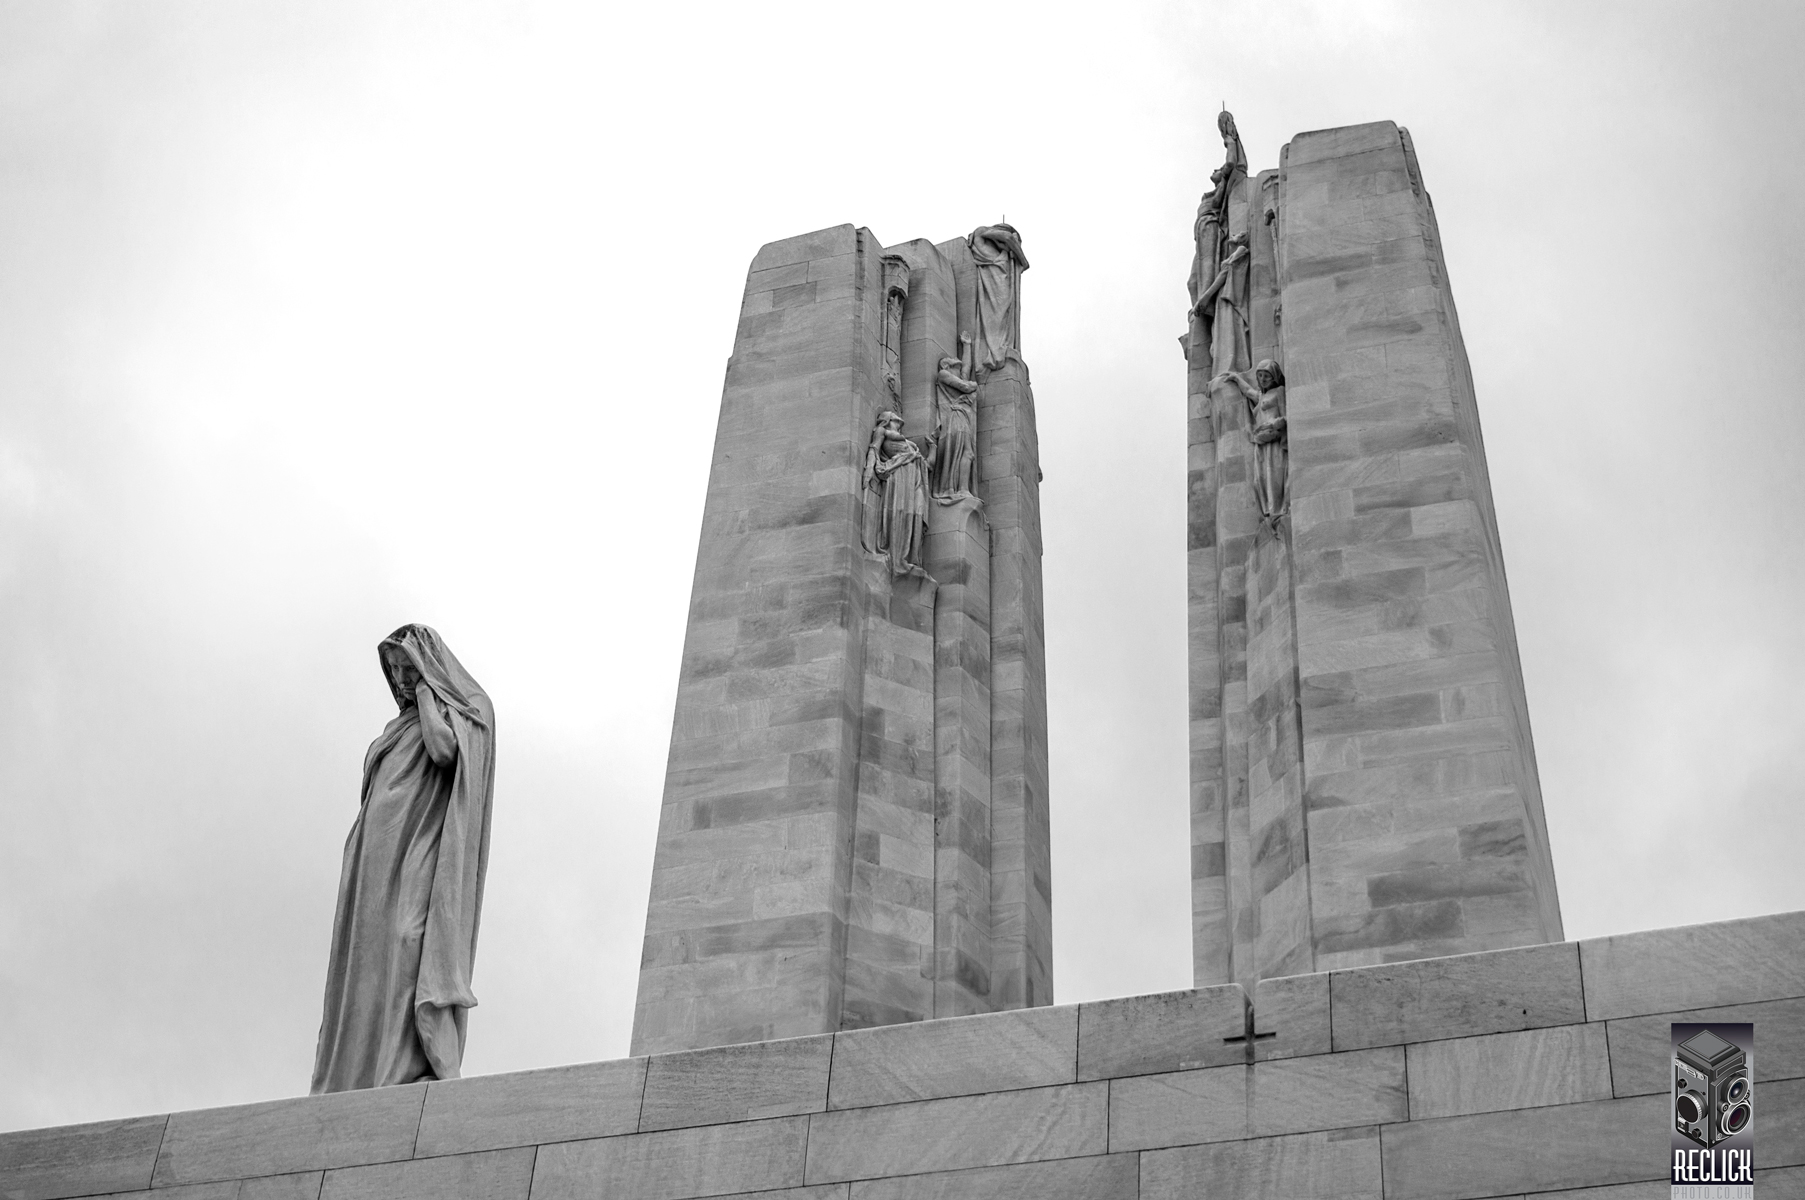 France, architecture, sculpture, landmark, WWI, First World War, History, Black and White, monochrome, Vimy, Battle of Vimy Ridge.